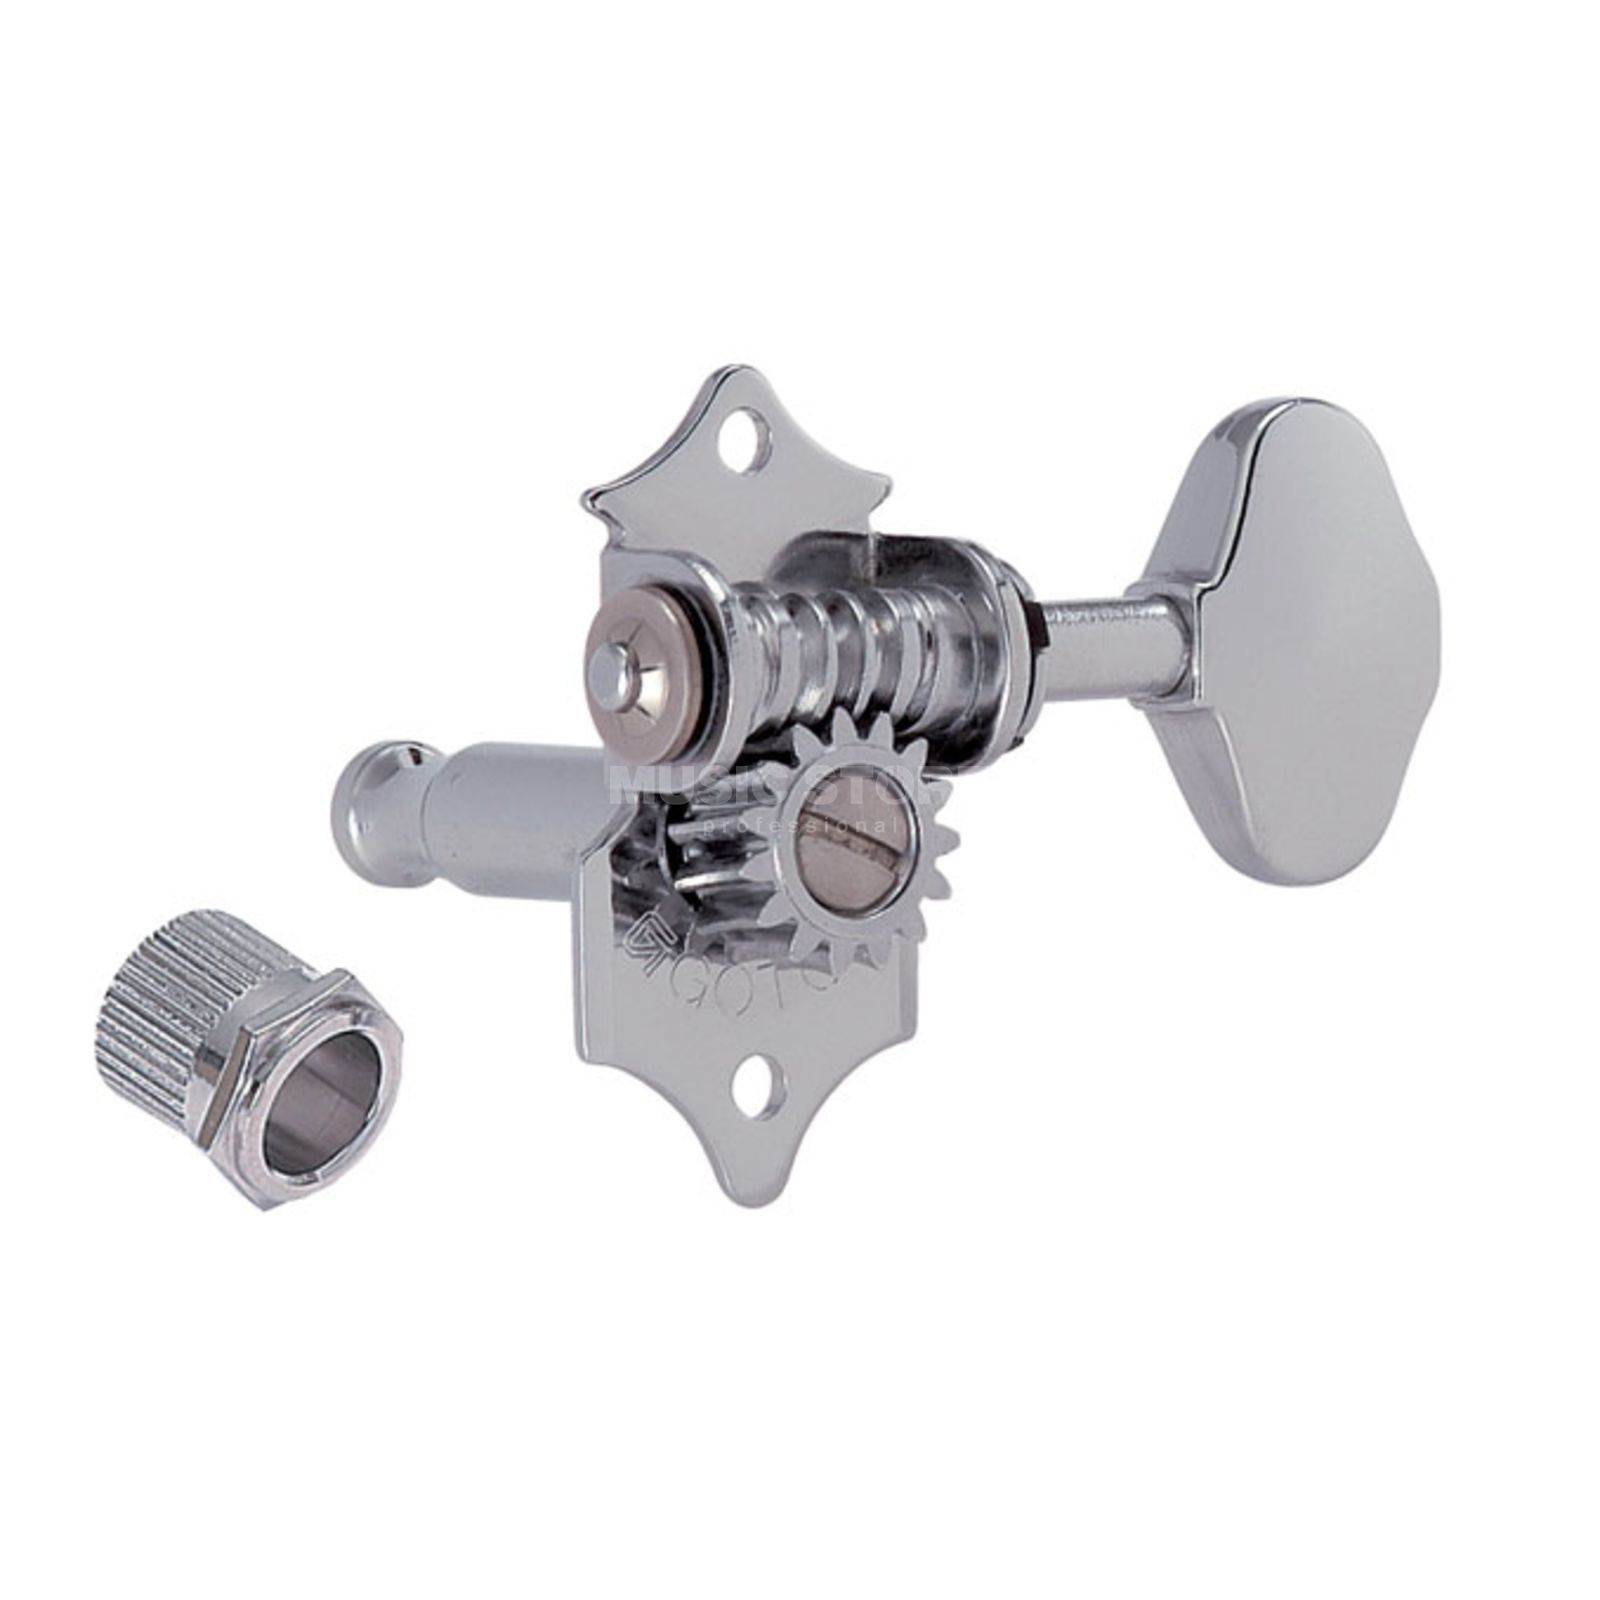 Gotoh SE-700 Mechanik N 3L 3R 06M Button nickel Produktbild